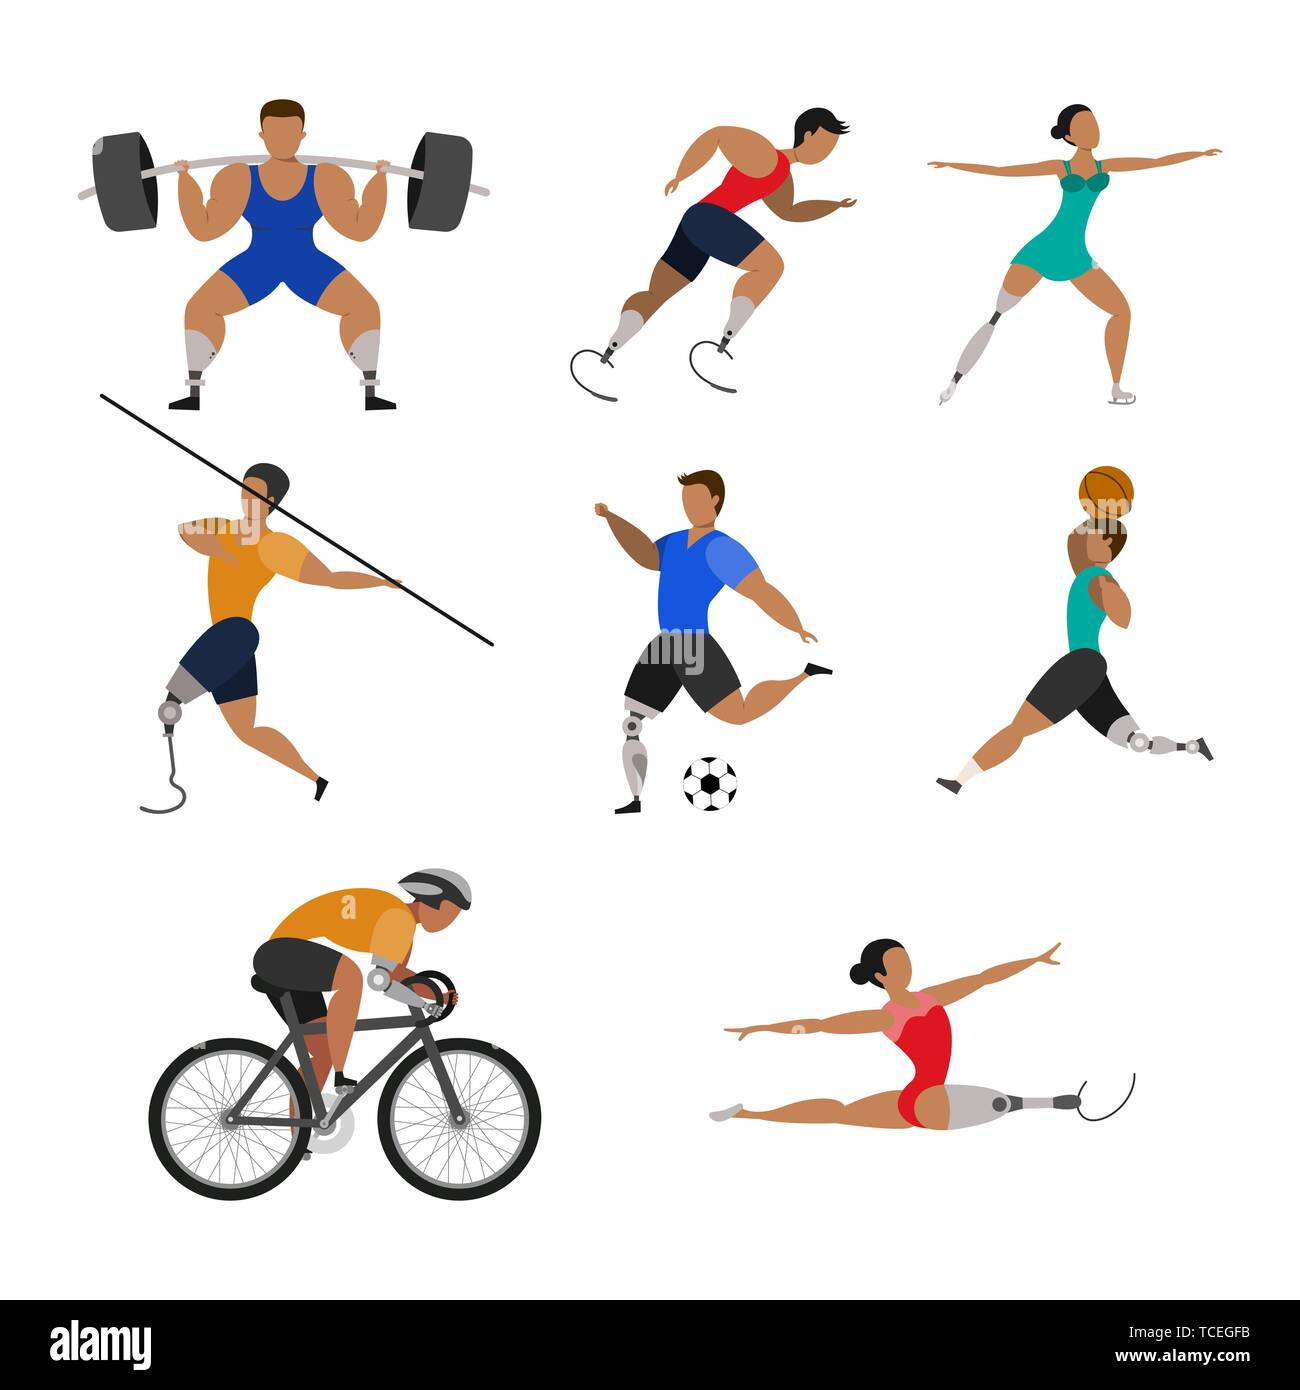 Set of athletes with bio prosthetic limbs on a white background. - Stock Vector